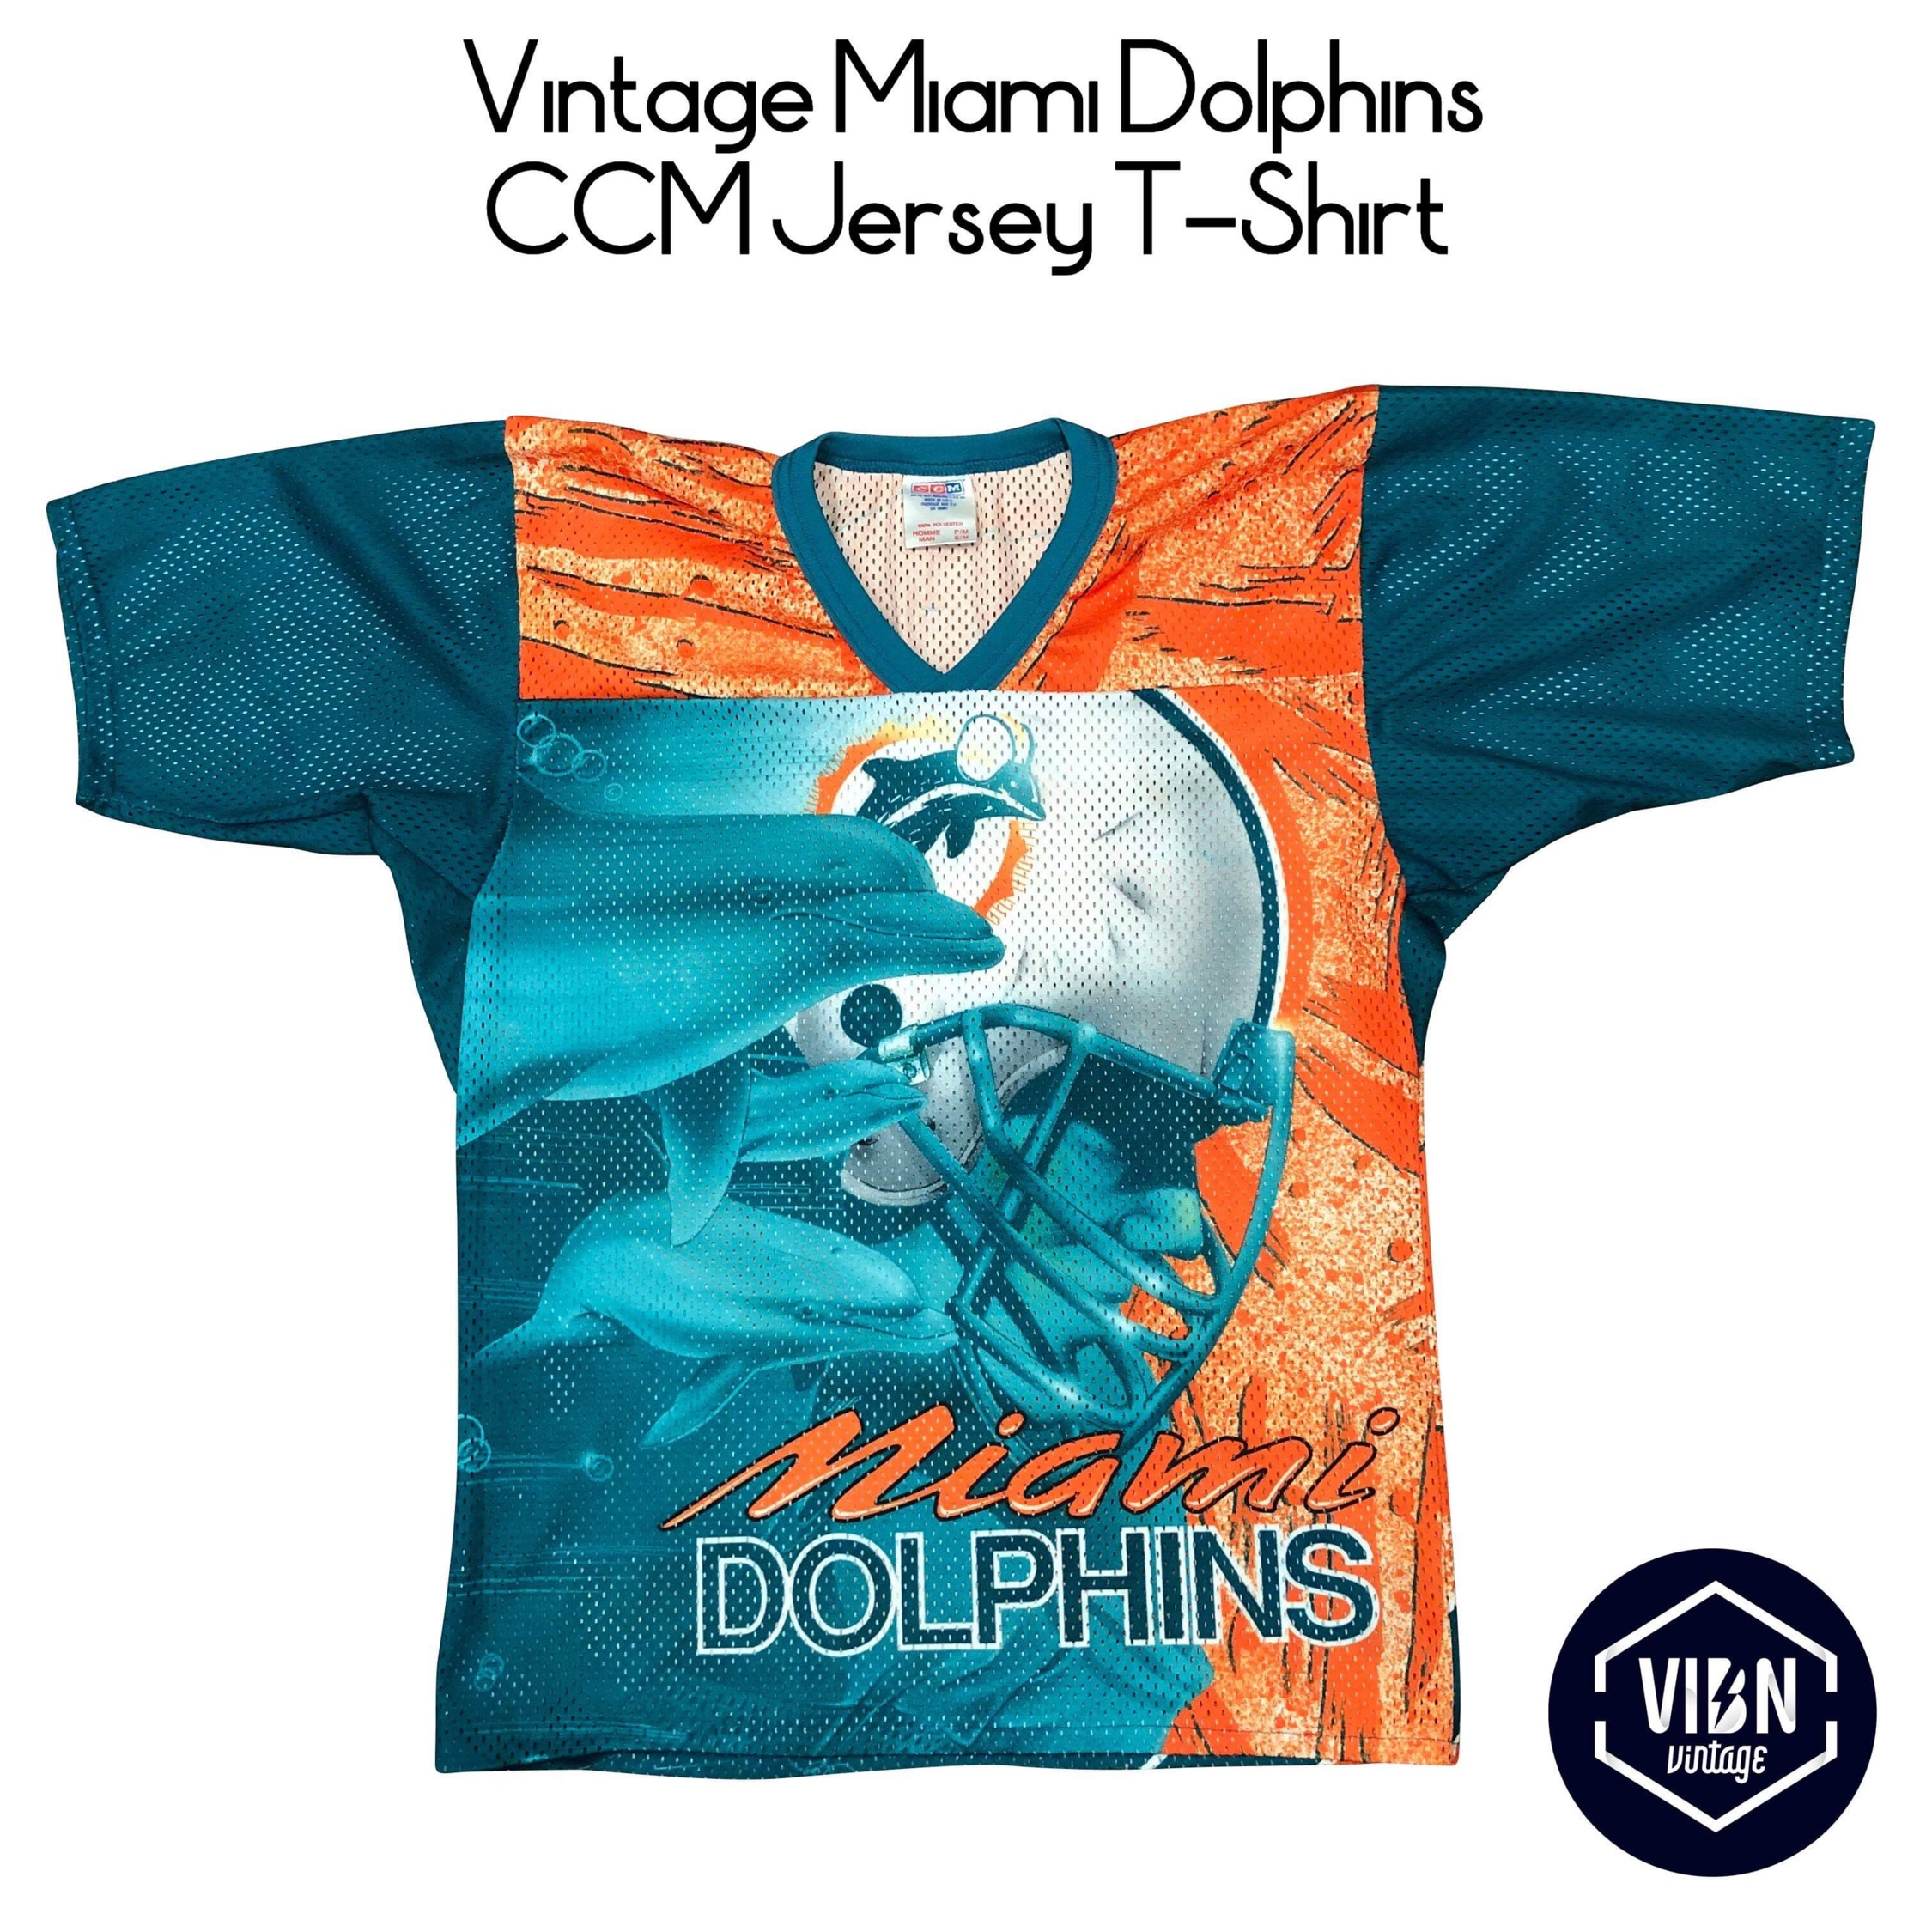 Cheap Vintage Miami Dolphins Ccm Jersey T Shirt  free shipping